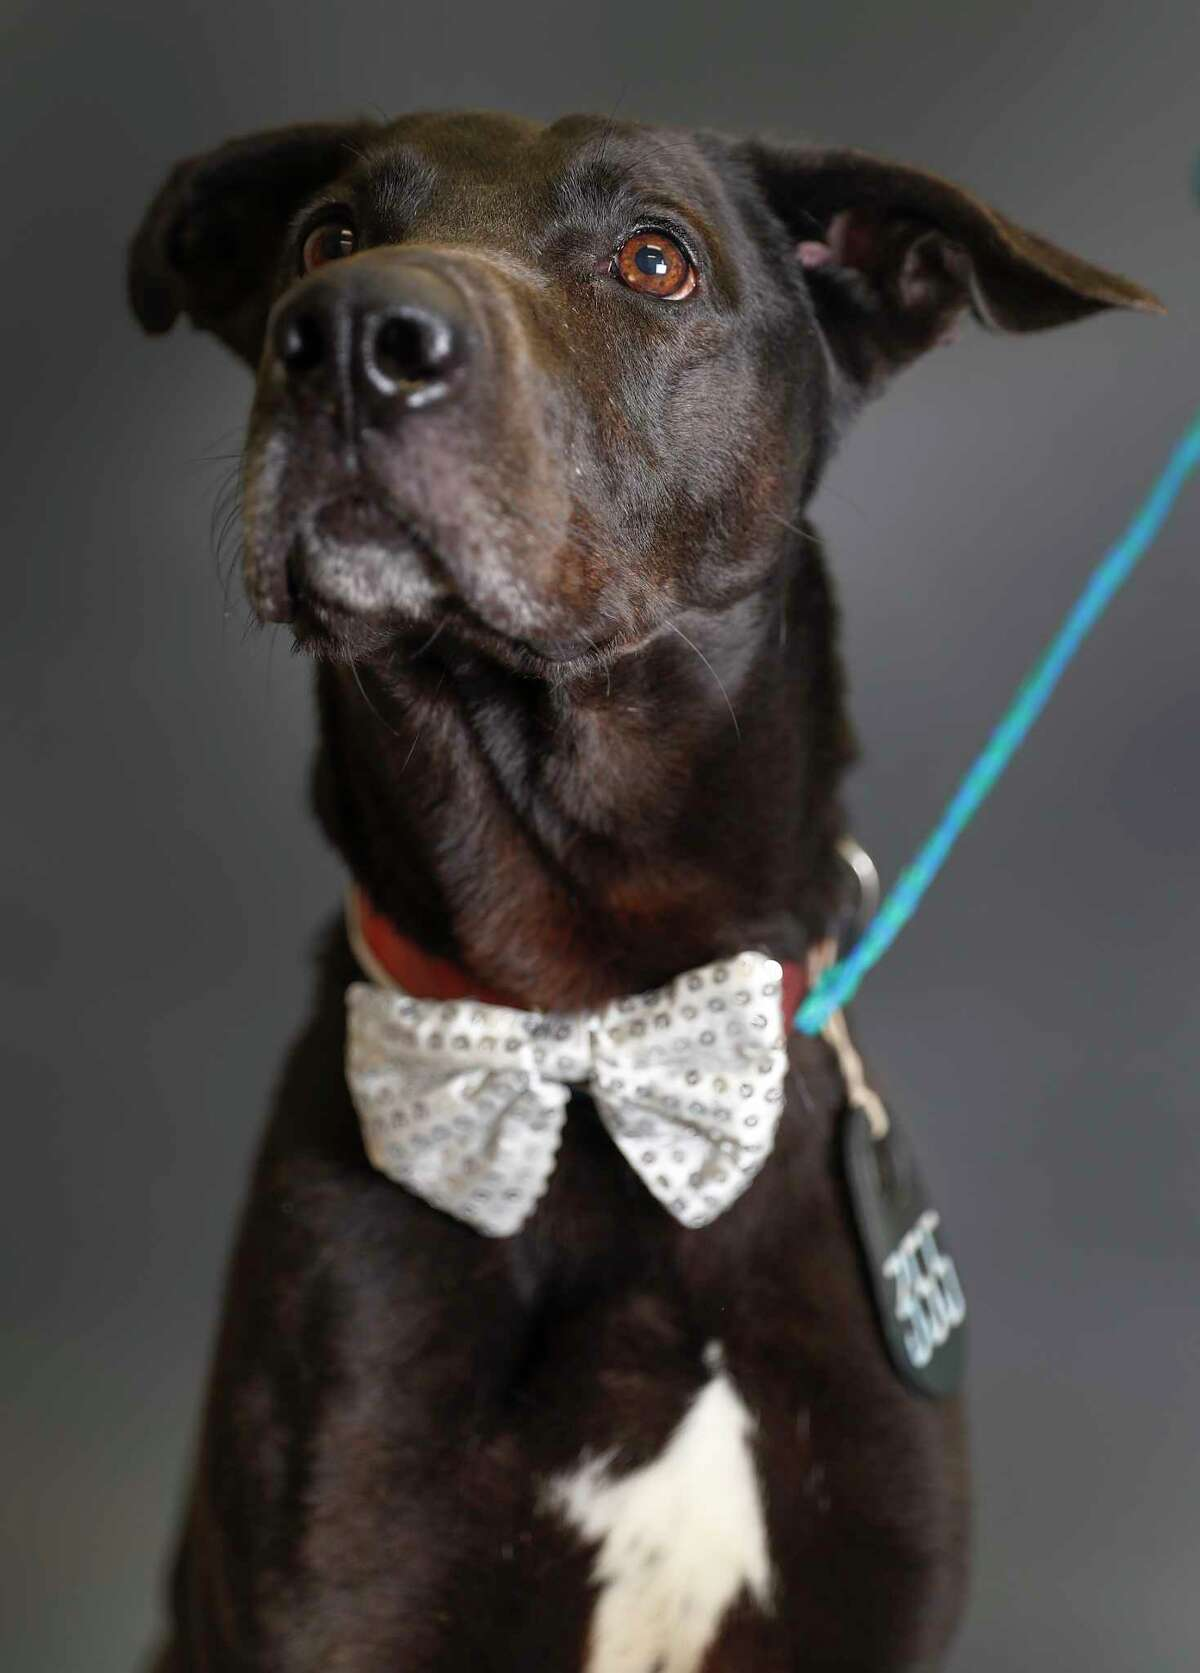 Charlie is a 5-year-old, male, Labrador Retriever mix and is ready to be adopted from Harris County Animal Shelter. (Animal ID: A529880) Photographed Tuesday, April 9, 2019, in Houston. Charlie is a good dog, who knows how to sit, and was found as a stray.